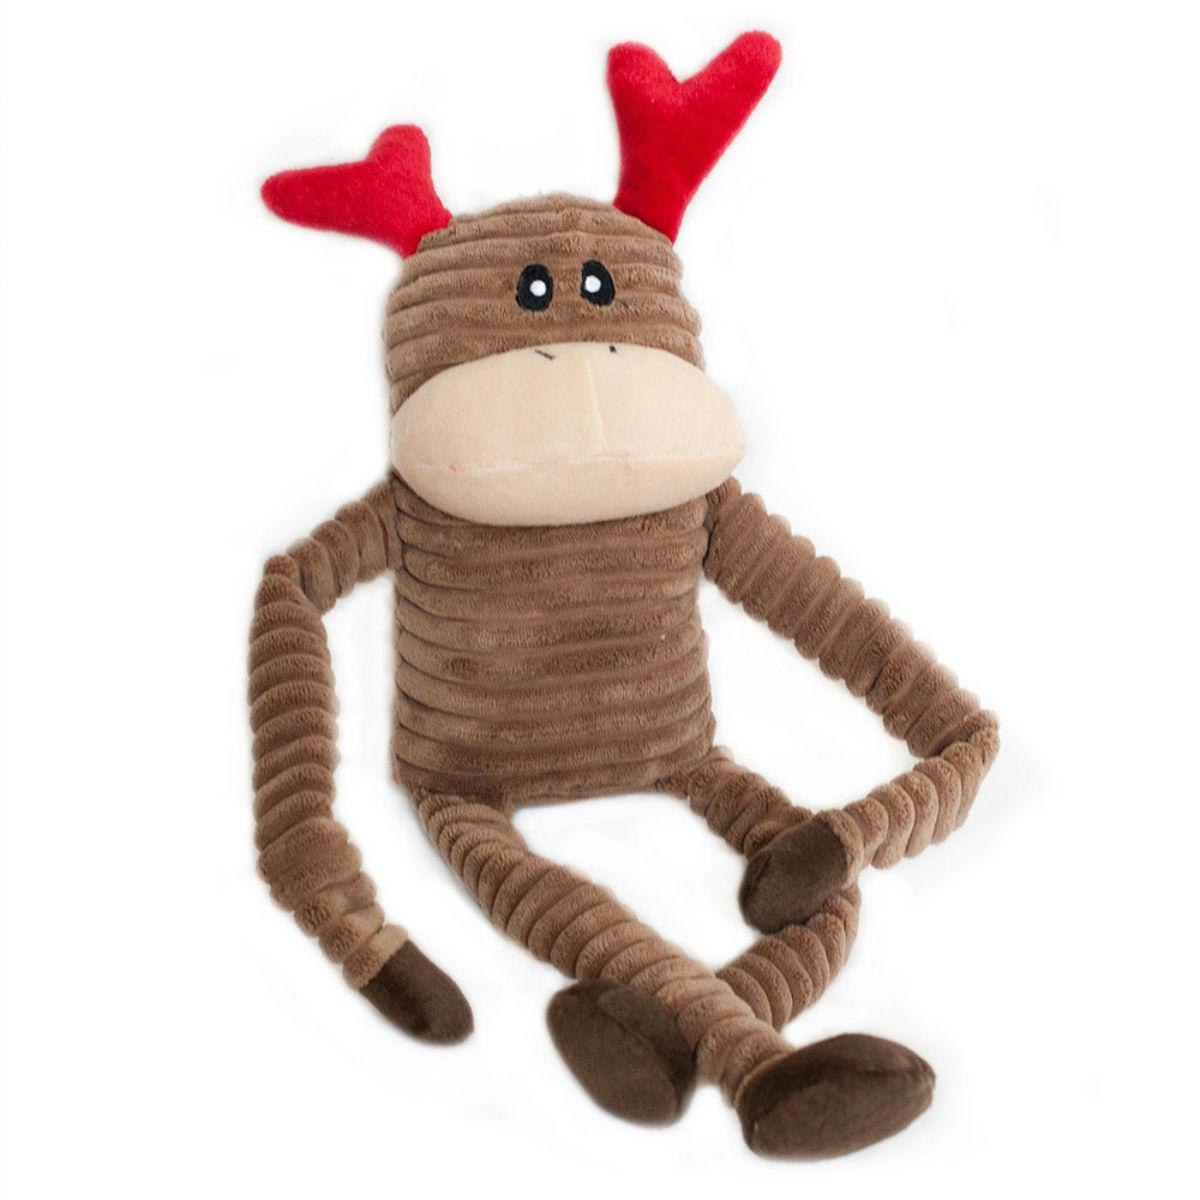 ZippyPaws Holiday Crinkle Dog Toy - Reindeer